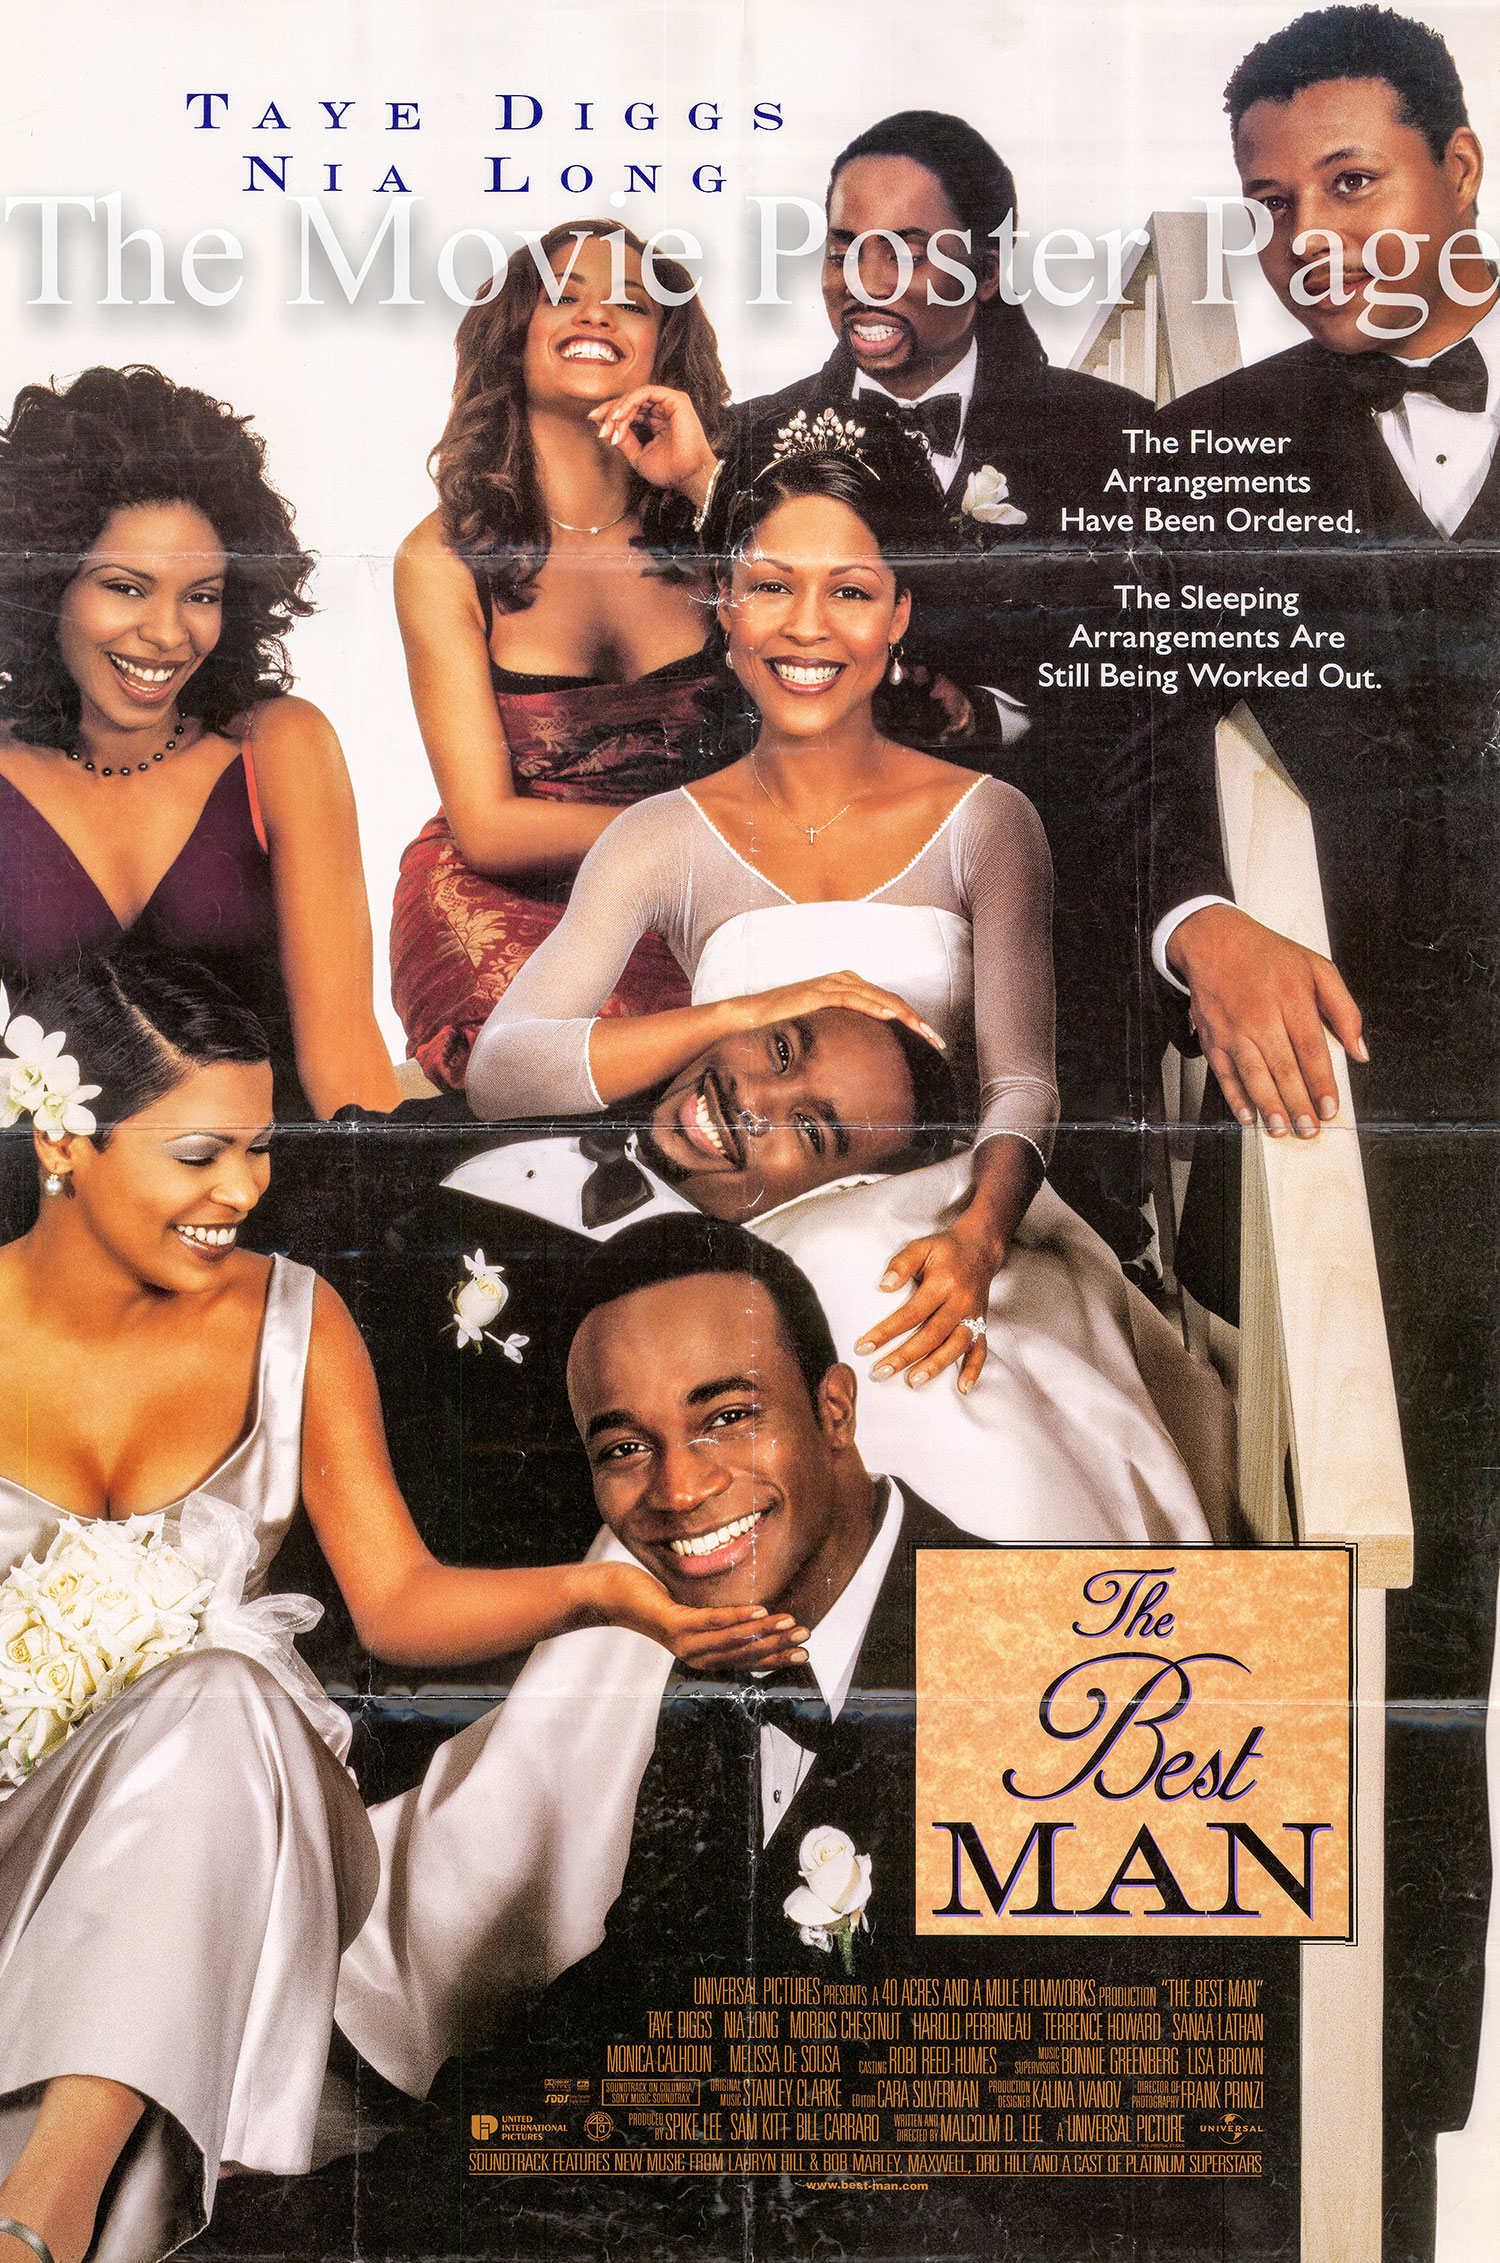 Pictured is a US one-sheet poster for the 1999 Malcolm D. Lee film The Best Man starring Taye Diggs.